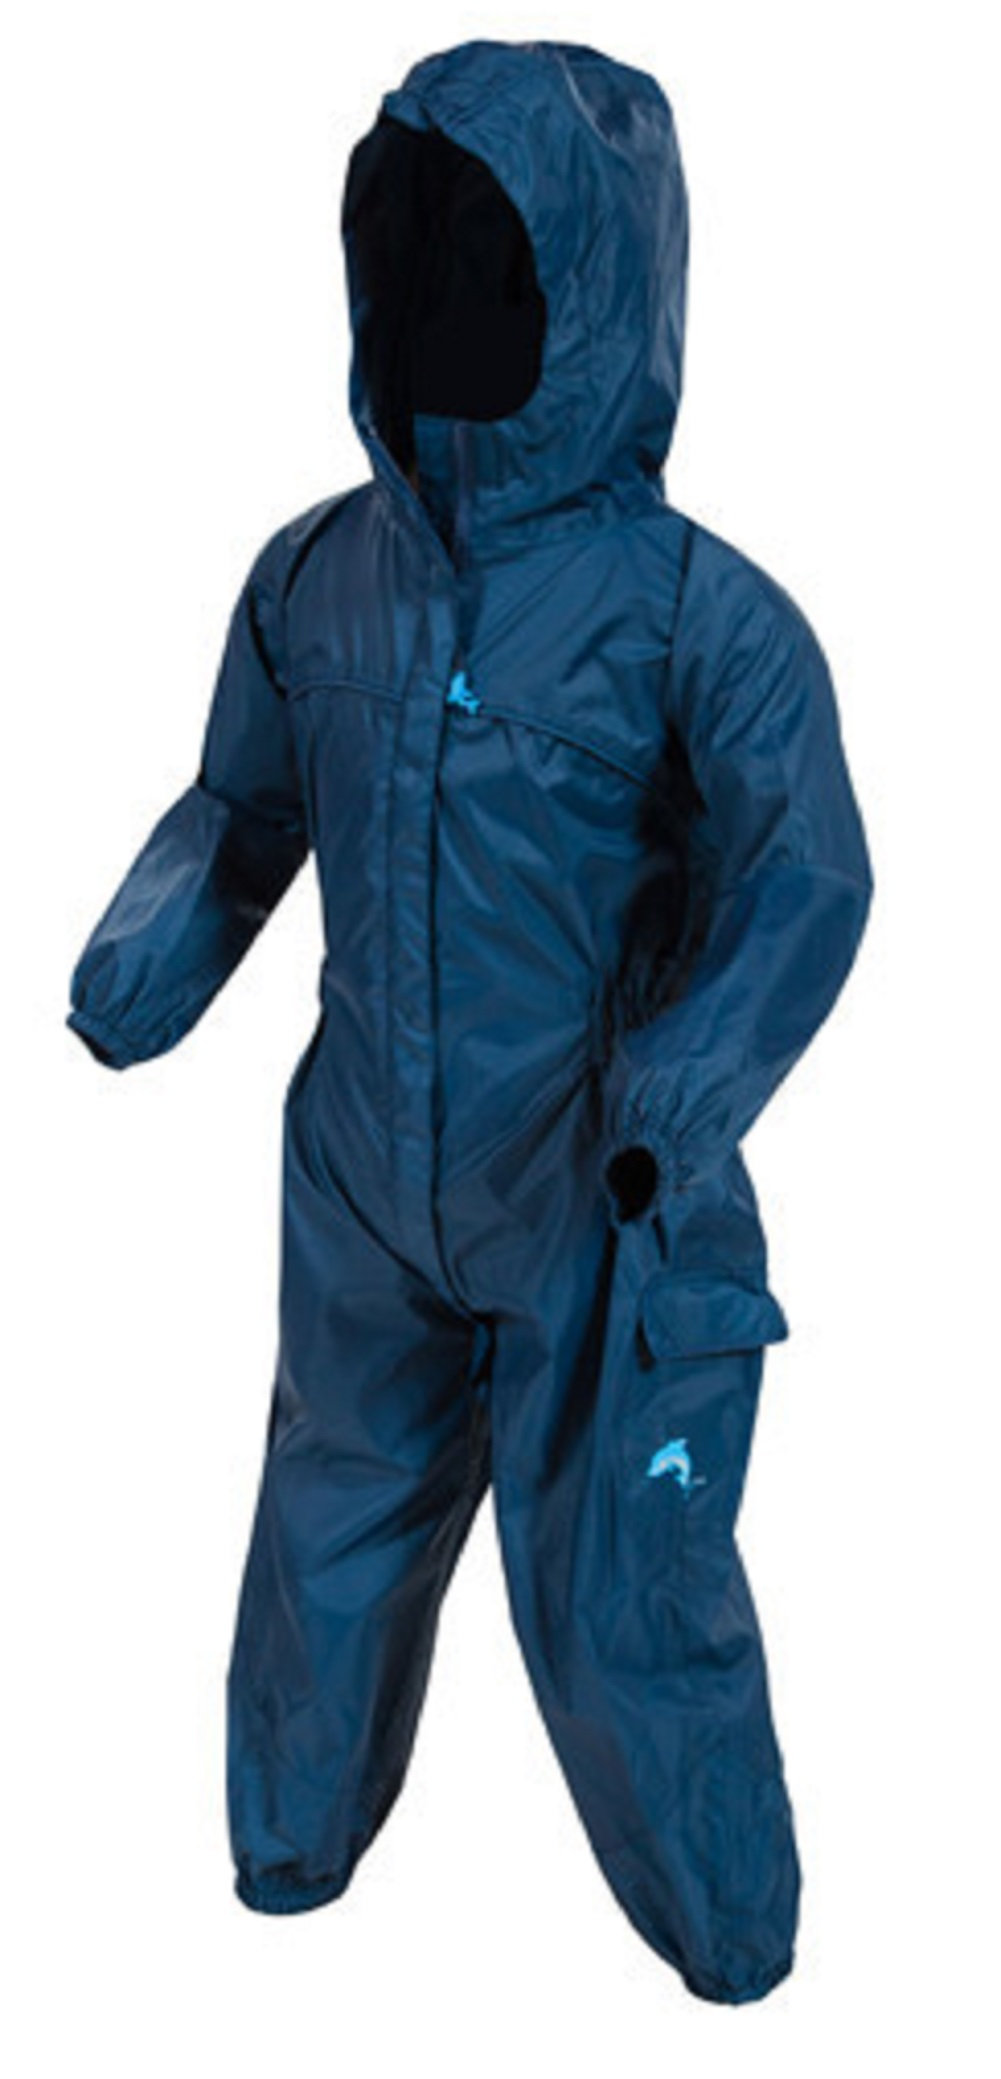 Performance rain gear, jackets and pants offer a barrier between you and the rain—so you can stay outdoors longer. Choose rain gear designed with a technical construction and breathable fabric.